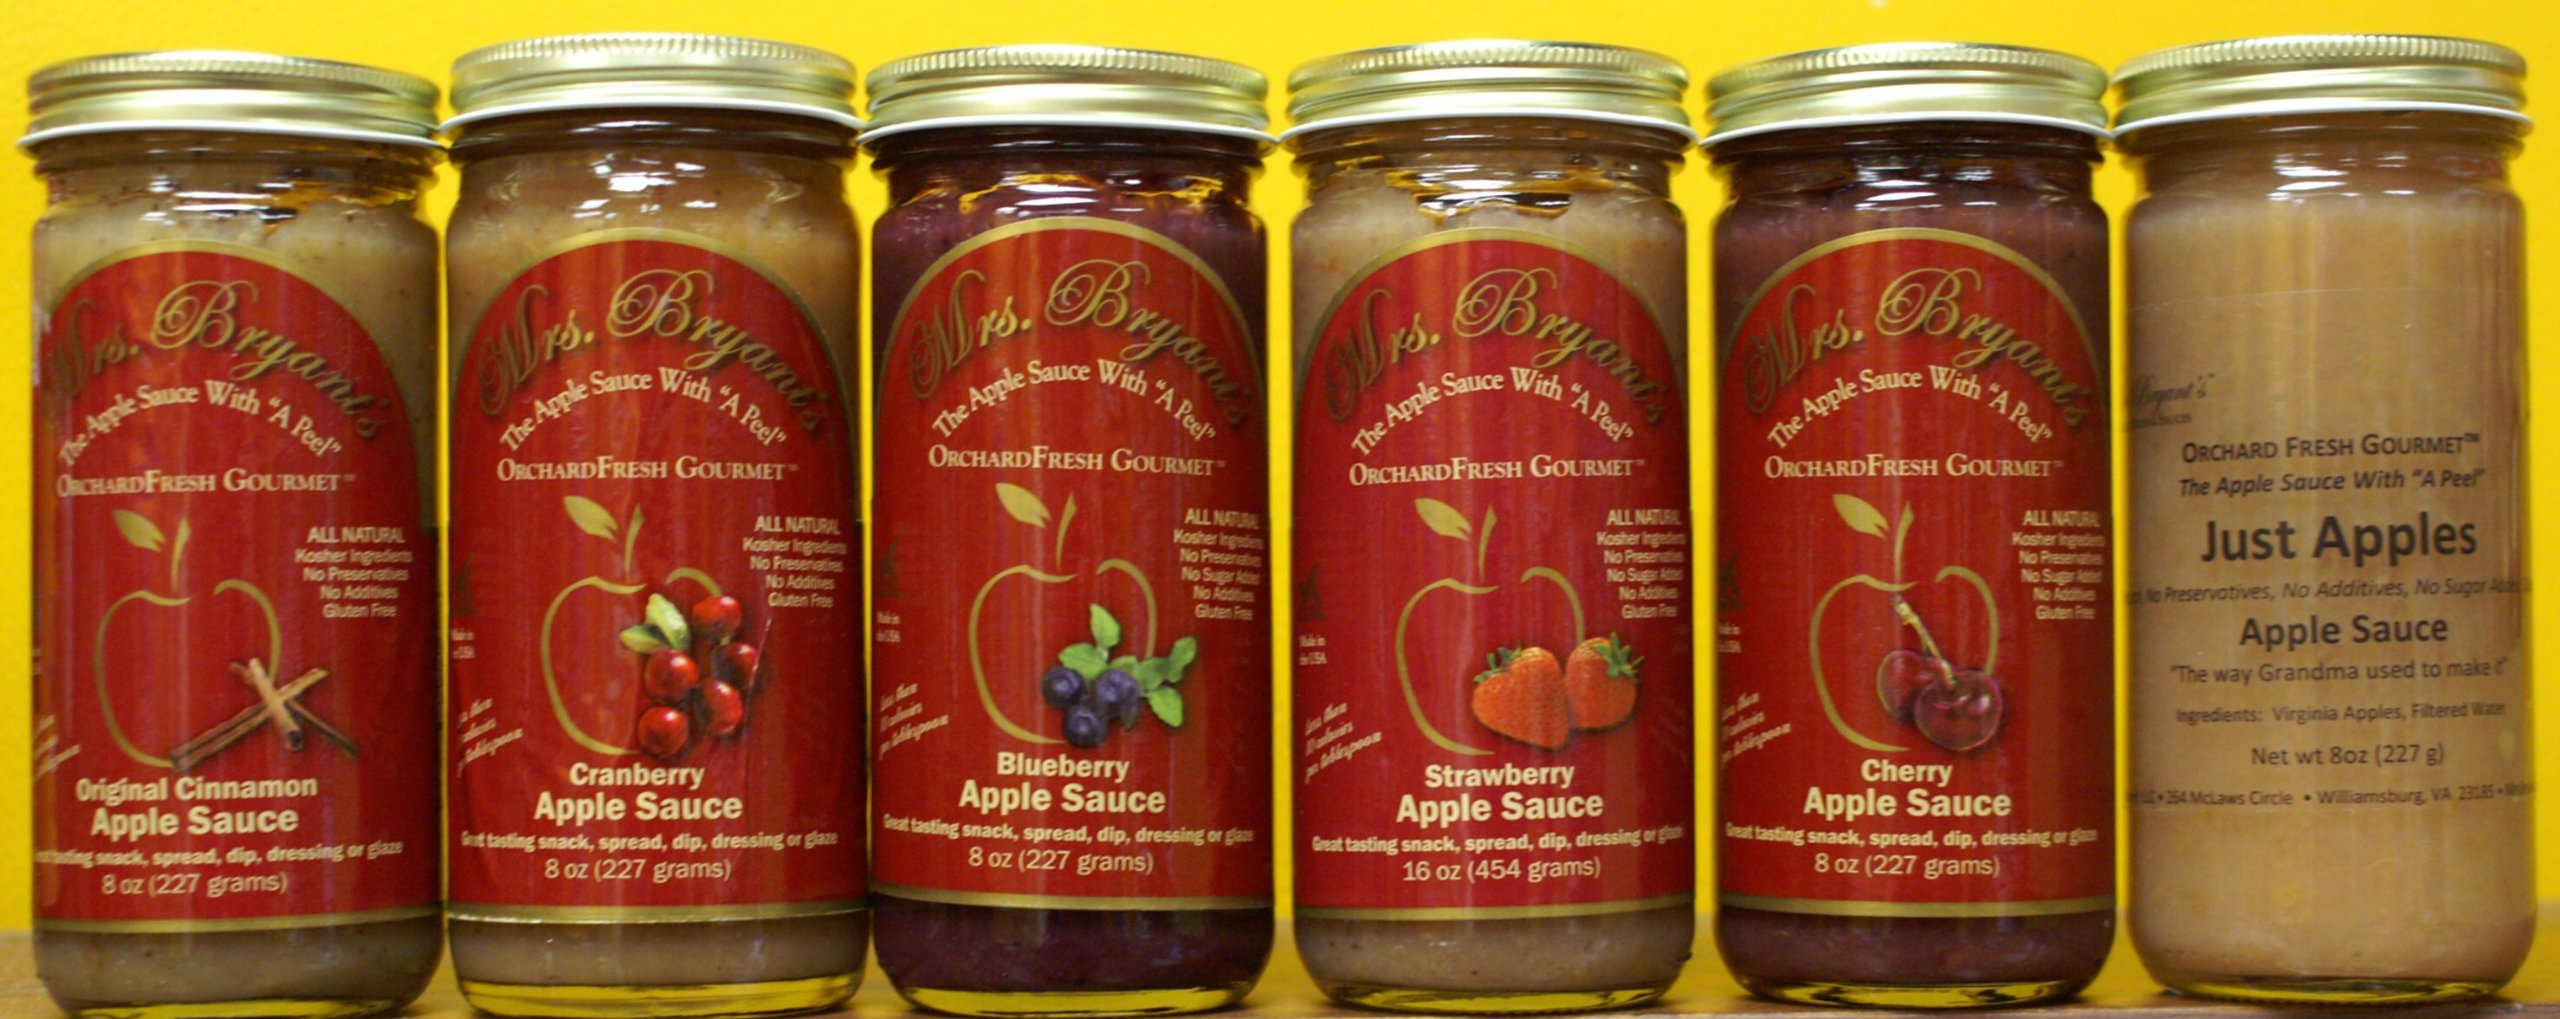 Mrs. Bryant's Orchard Fresh Gourmet Fruit Blended Apple Sauces - 12 Jar Variety Pack - Blueberry, Cherry , Cinnamon, Strawberry, Just Apples (12-8oz jars) ''The Best Apple Sauce Ever in a Jar'' - Washington Post